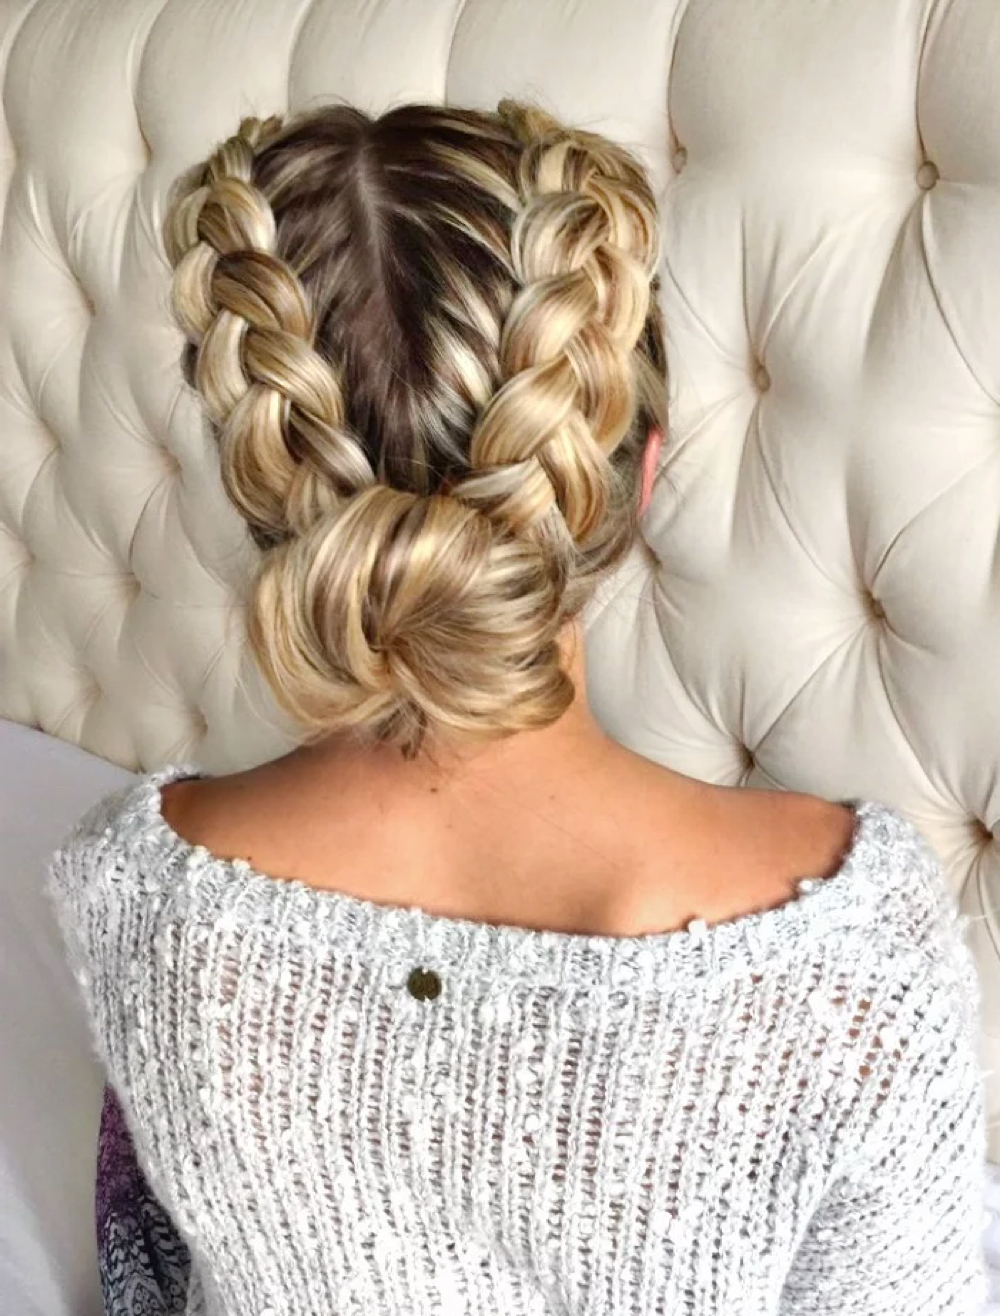 29 Gorgeous Braided Updo Ideas For 2019 With Regard To Popular Blooming French Braid Prom Hairstyles (View 4 of 20)